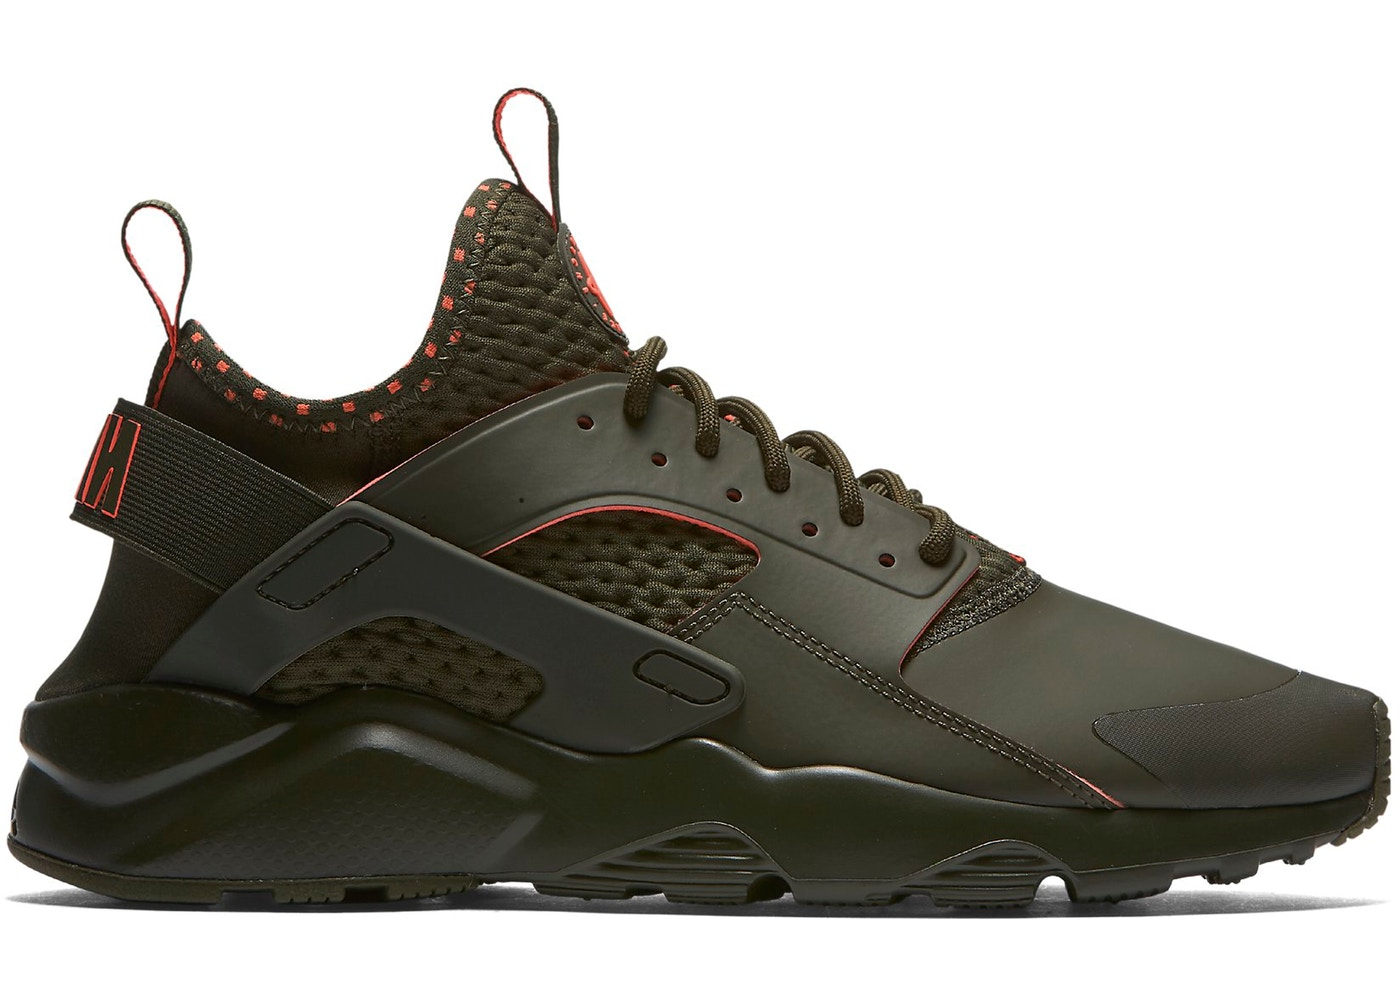 1c68fd69fcfe Air Huarache Run Ultra Cargo Khaki Crimson - 875841-301